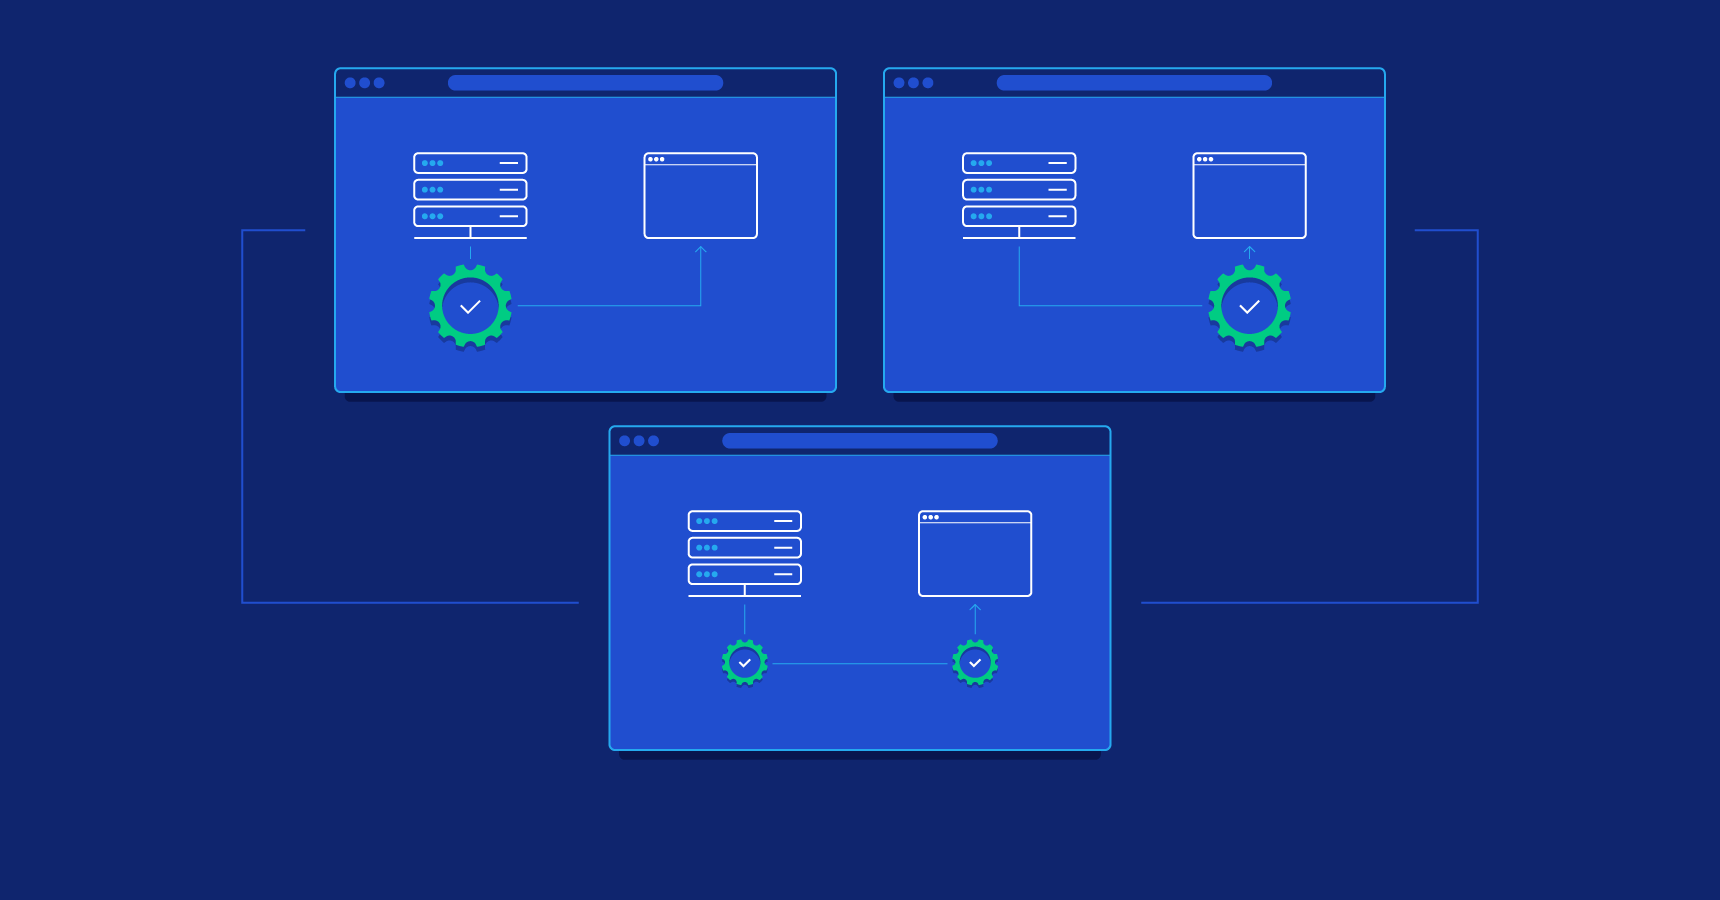 Web Apps: Client-side Rendering? SSR? Pre-rendering? | Toptal